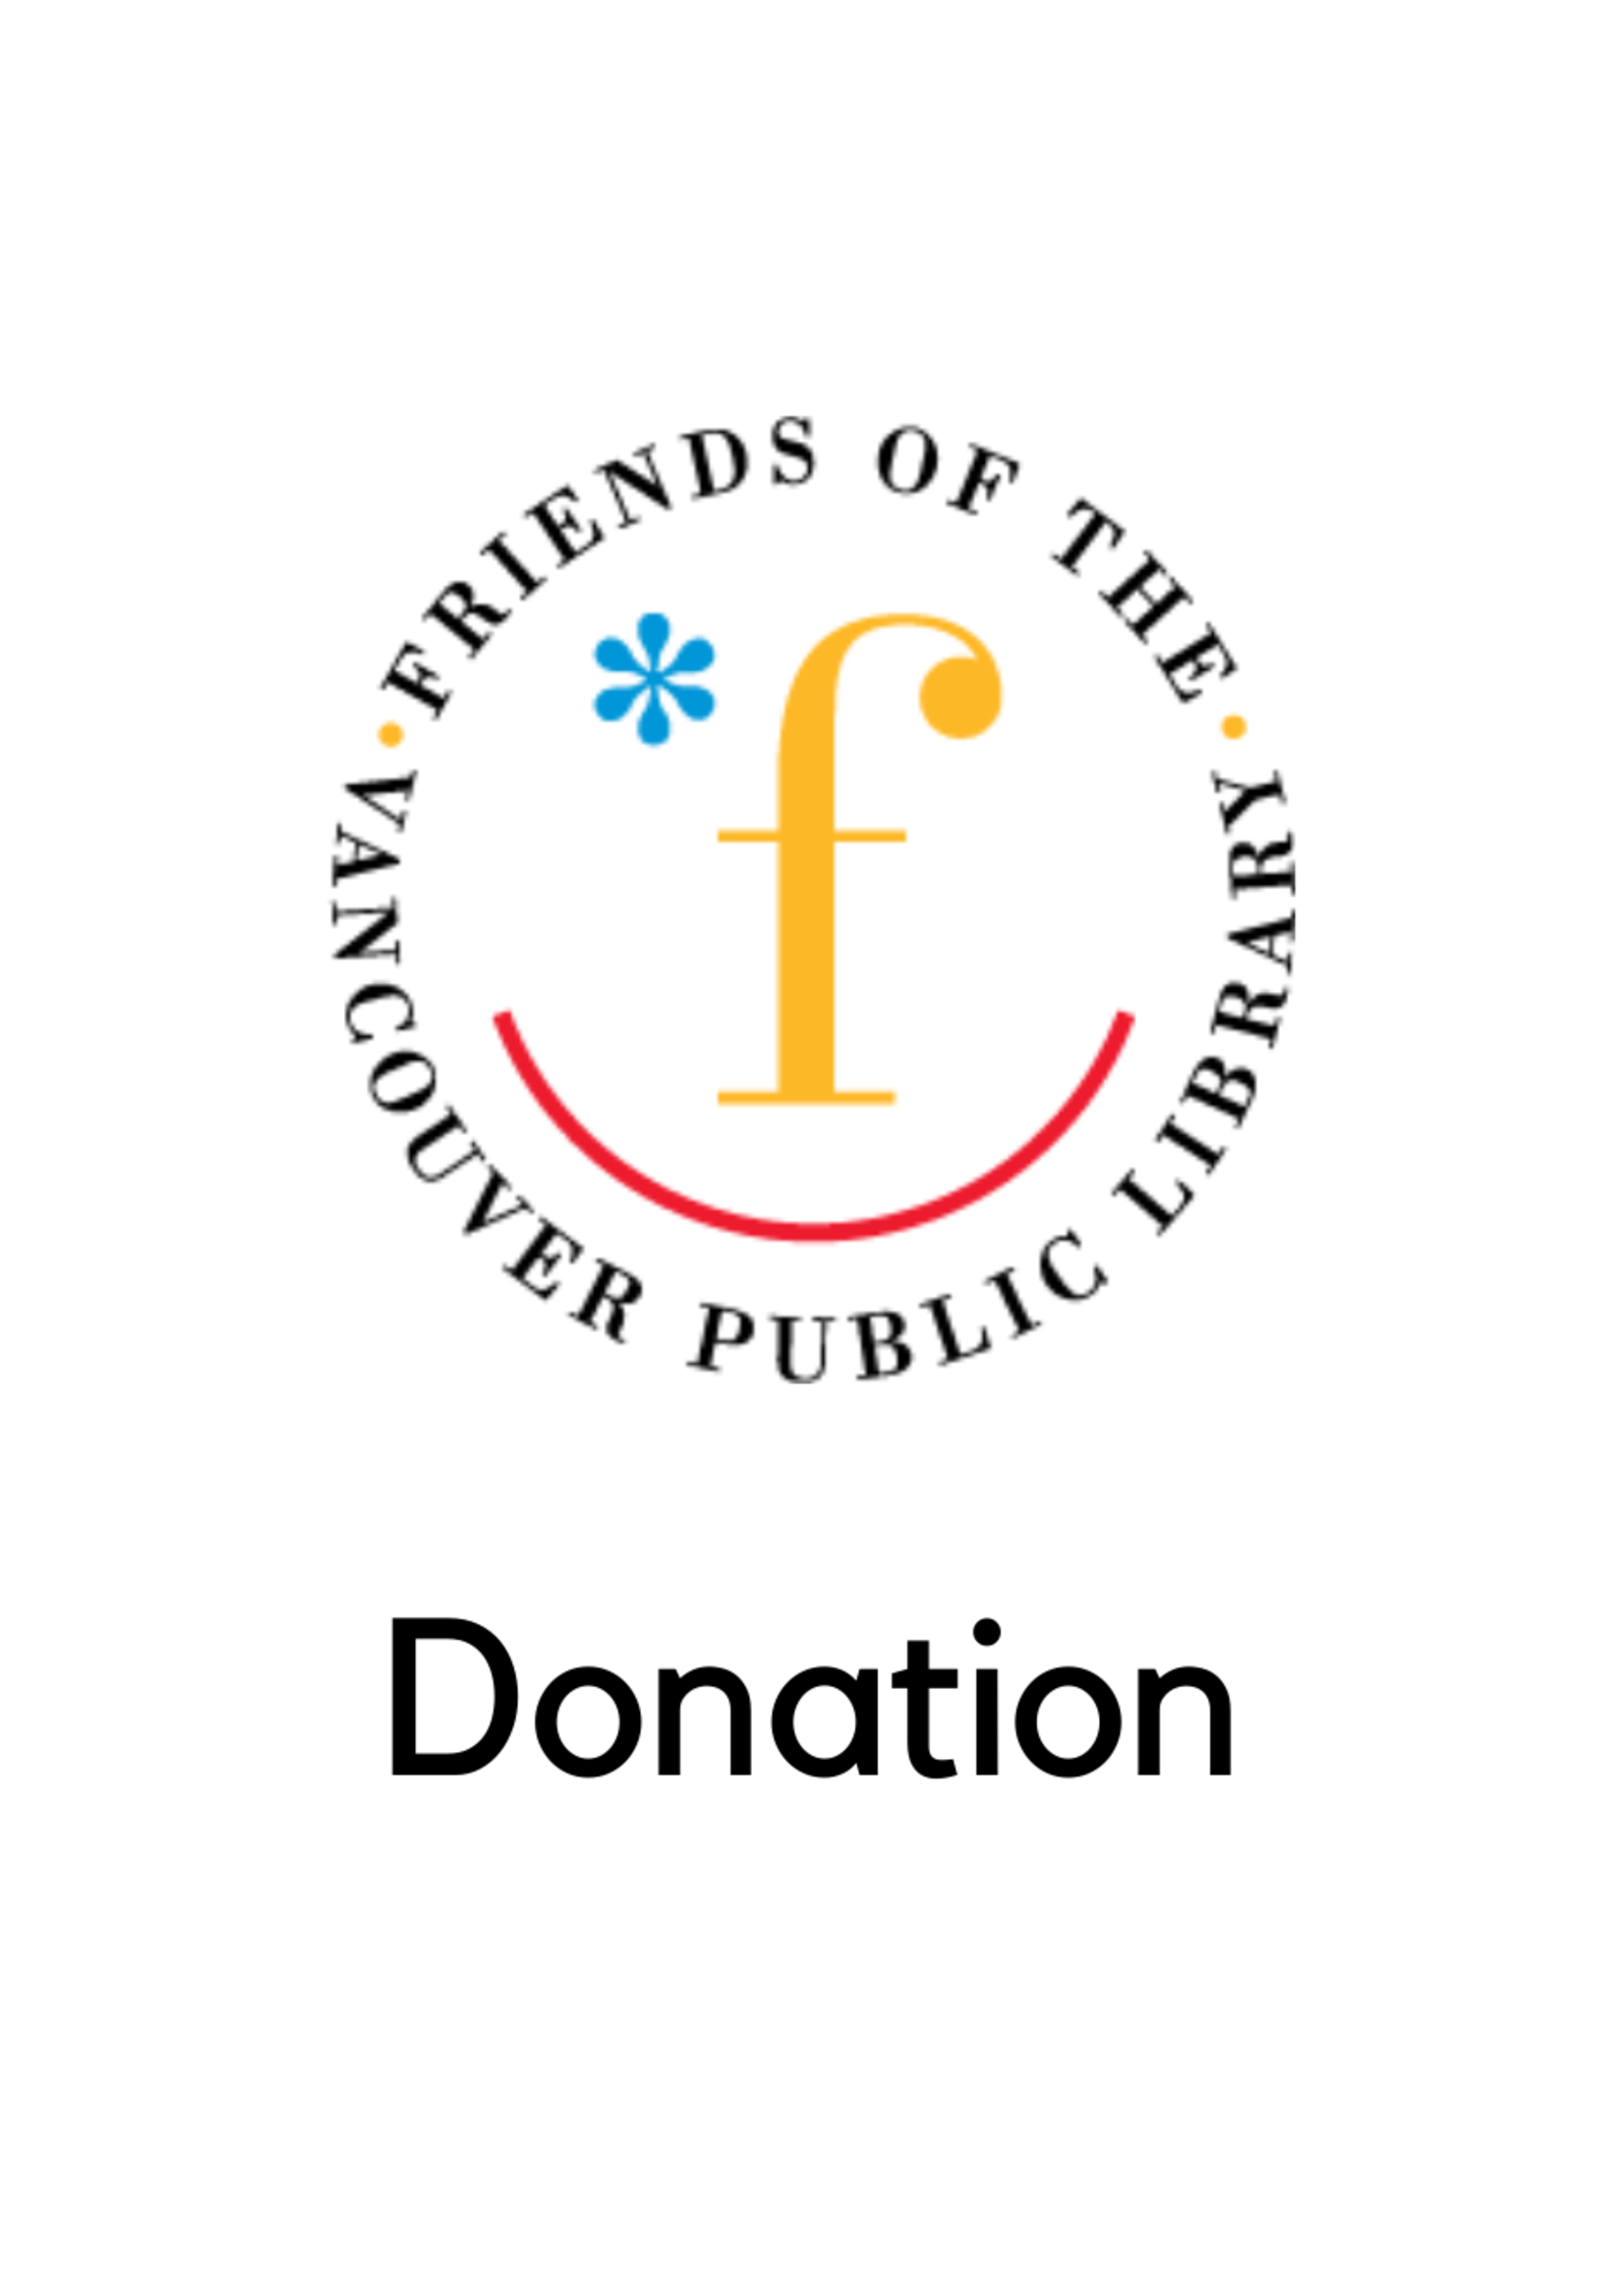 Donation to Friends of the VPL